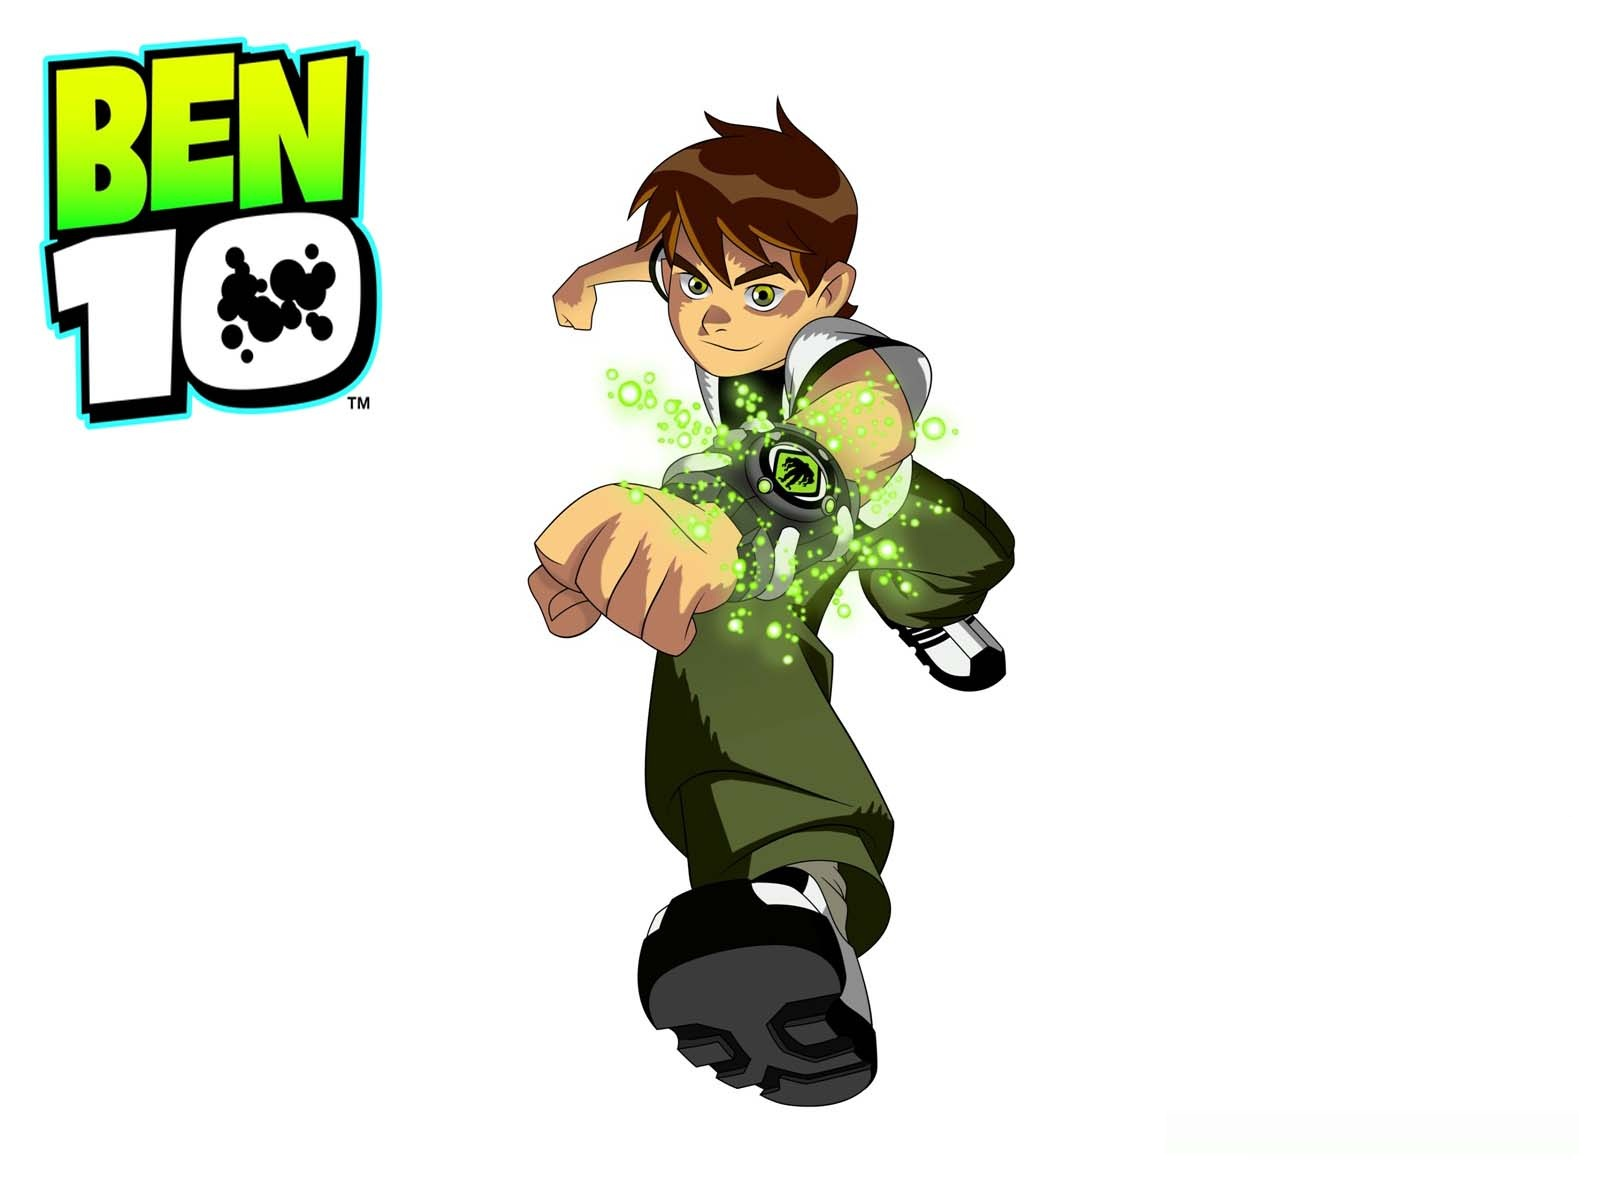 Ben 10 hd wallpapers high definition free background voltagebd Image collections